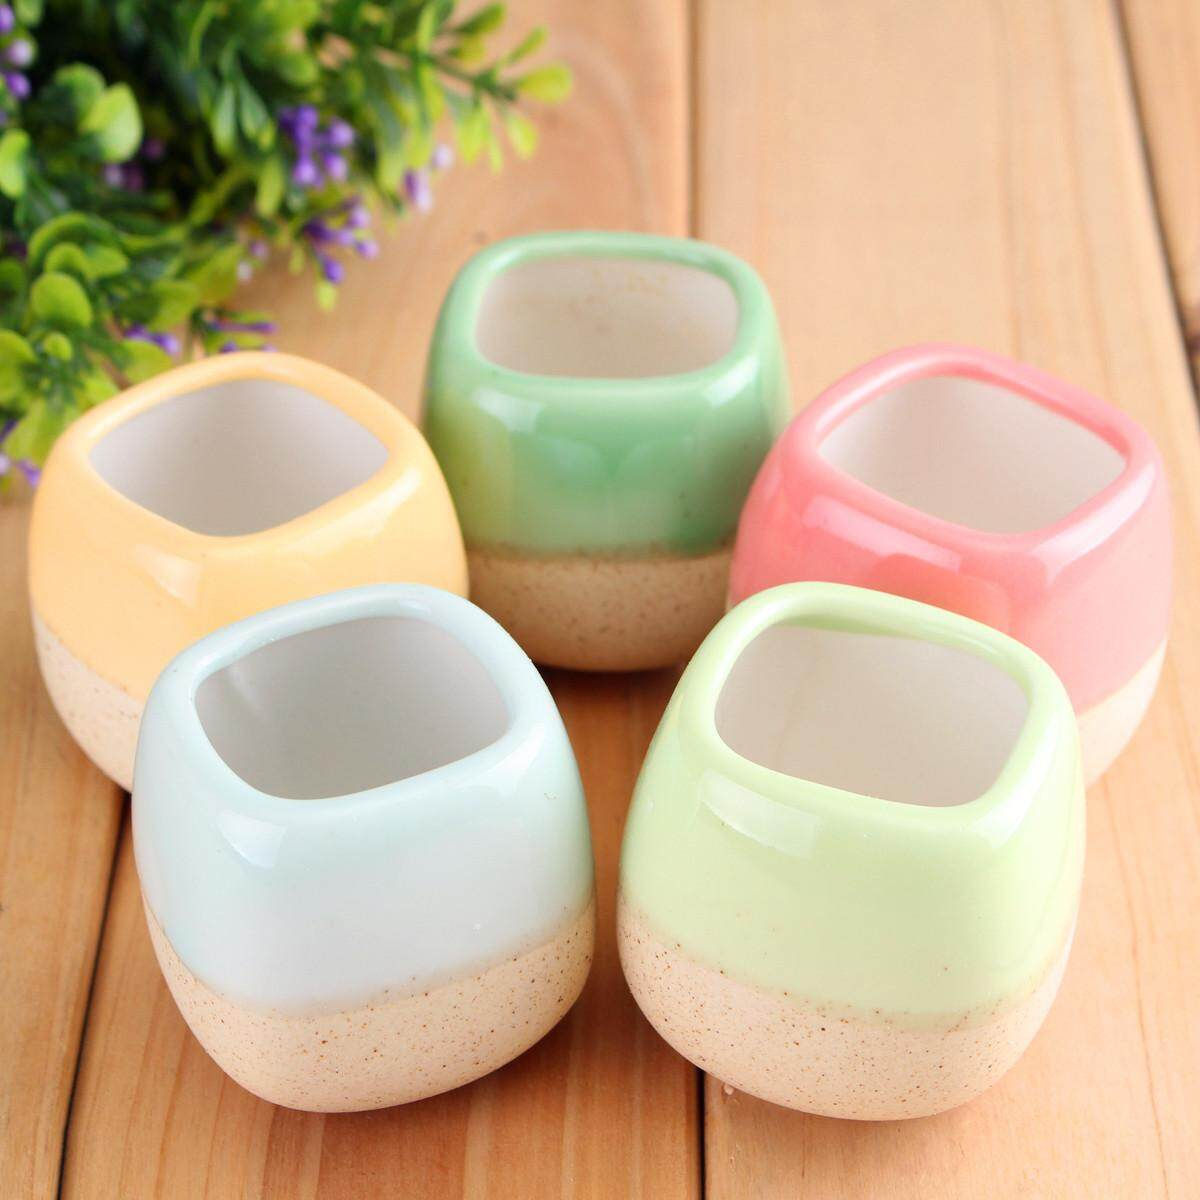 5Pcs Mini Glazed Ceramic Succulent Planter Plant Flower Pot Home Garden Decor